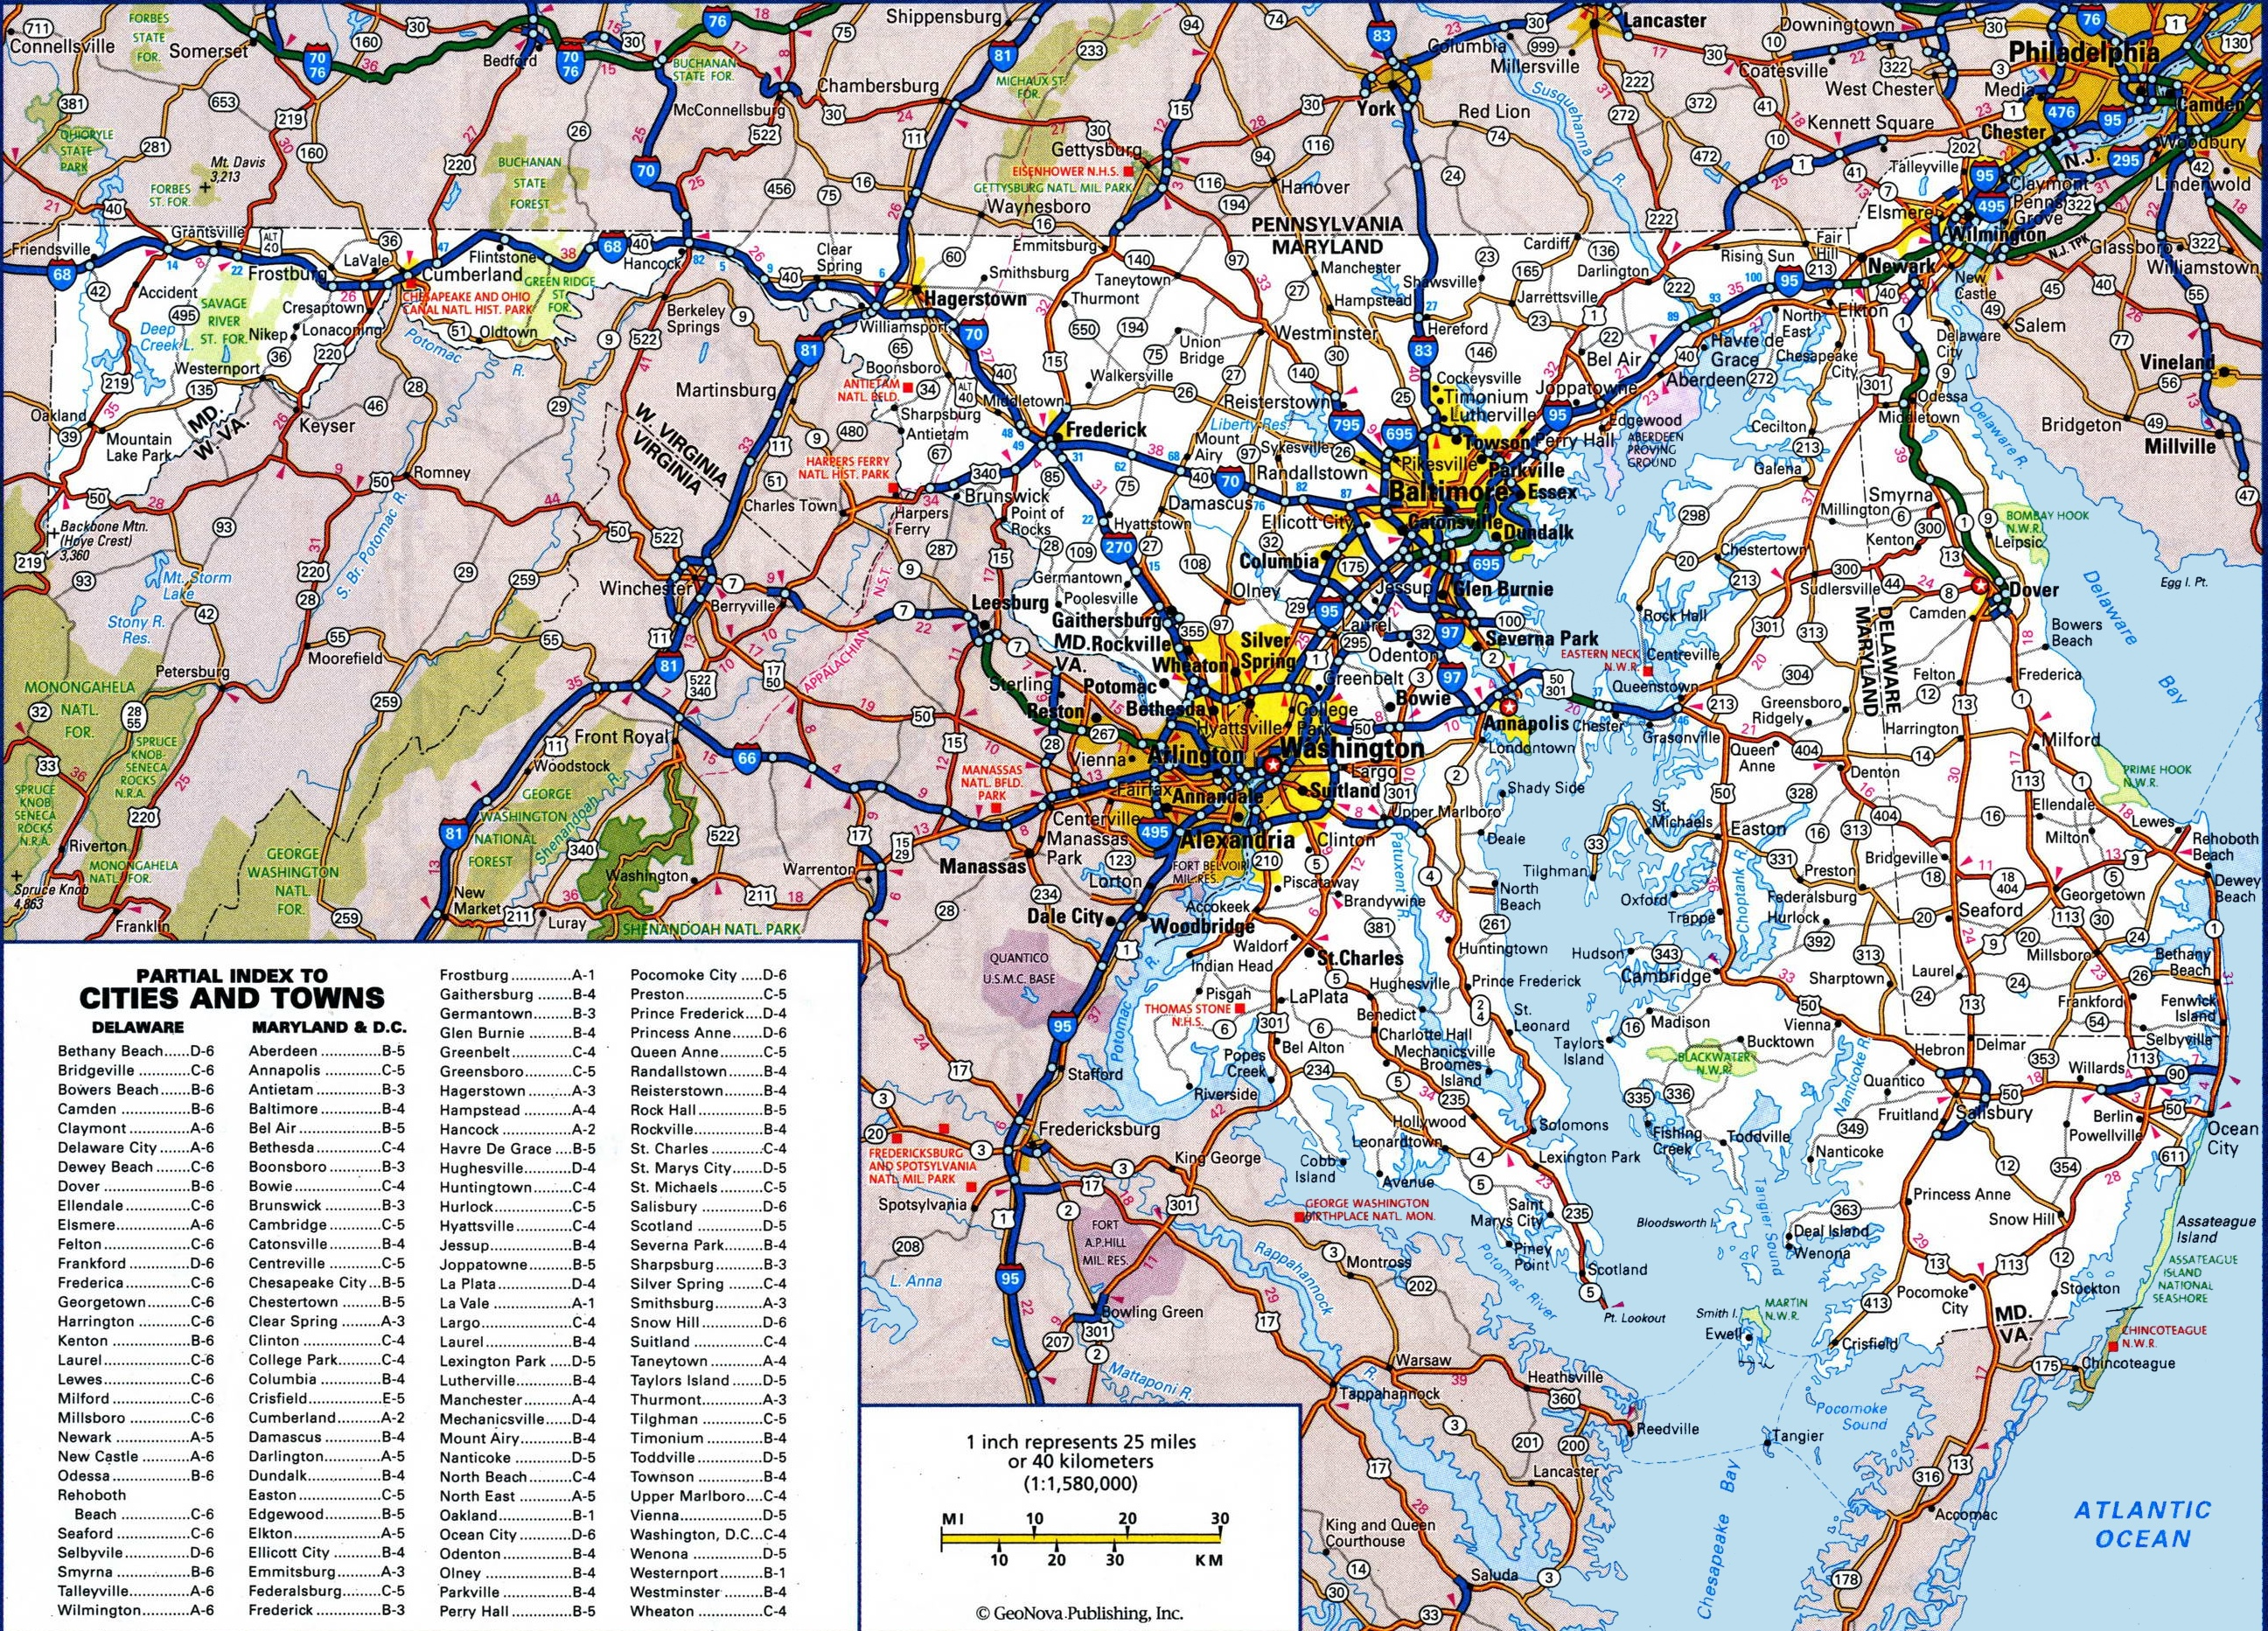 Large Detailed Map Of Maryland With Cities And Towns - Detailed usa map with states and cities